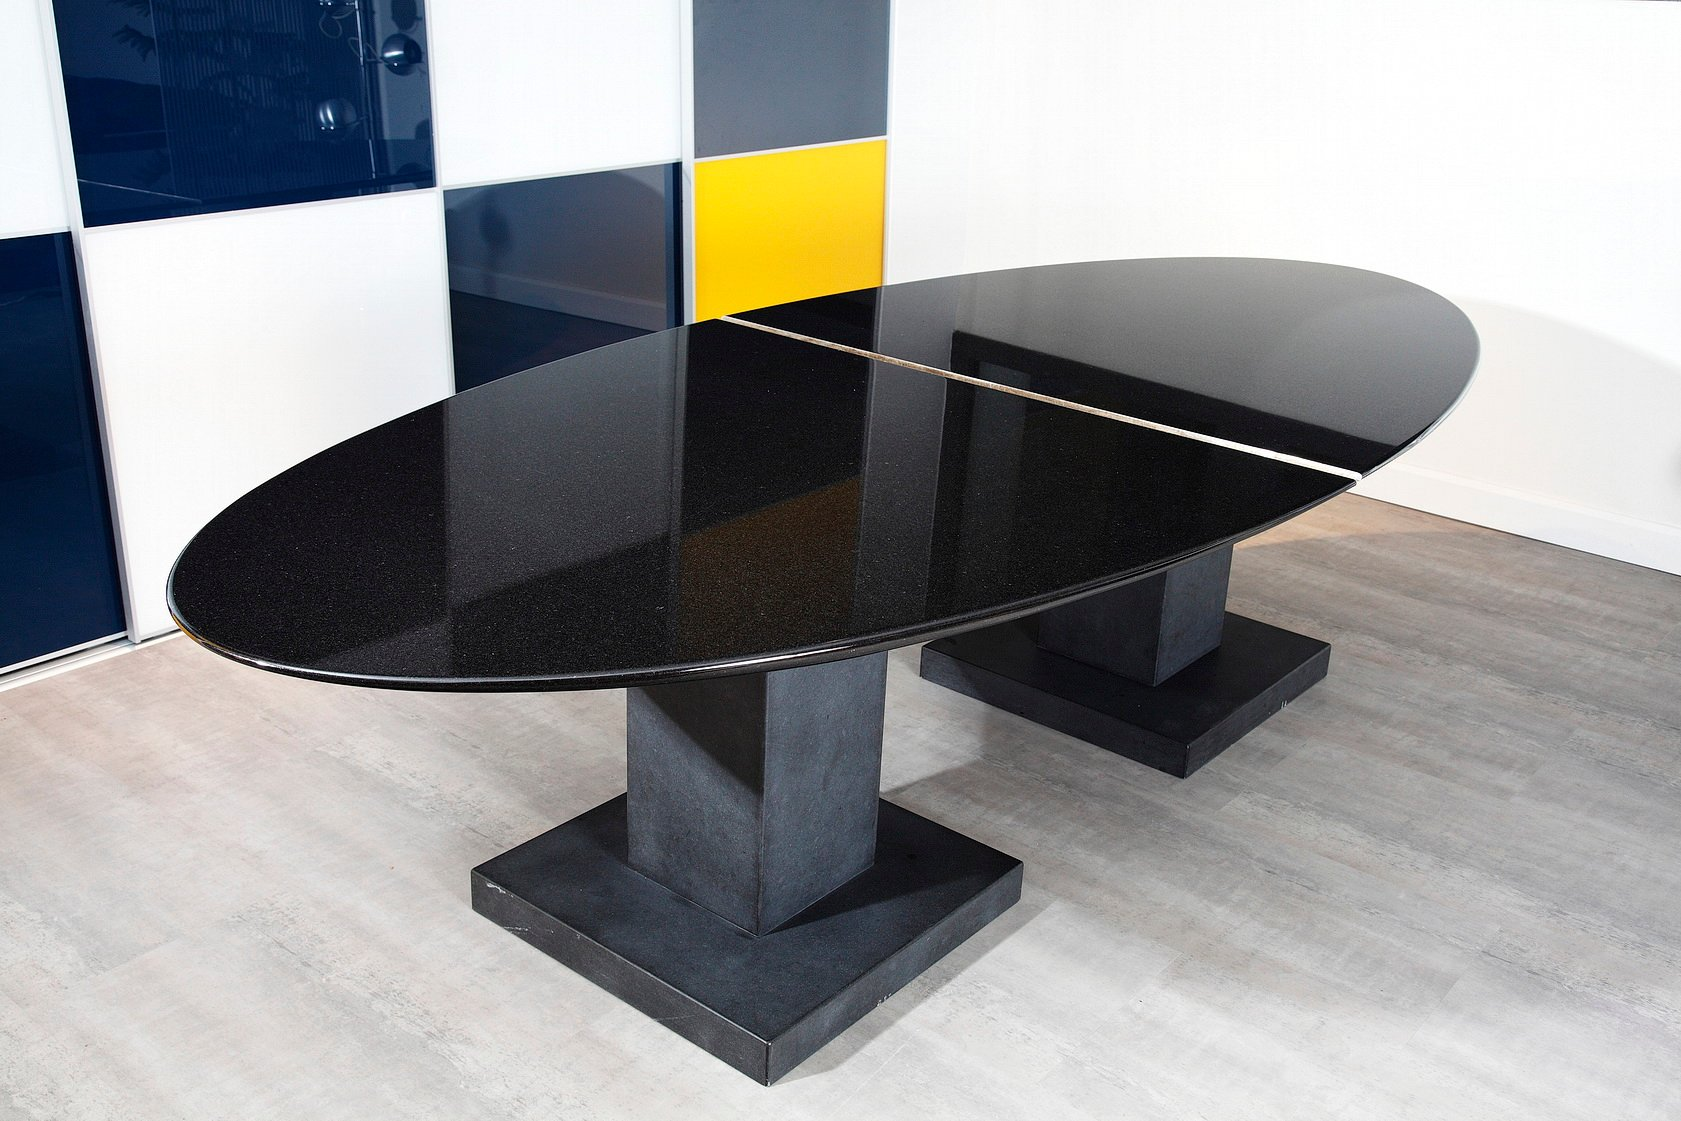 Black Granite Dining Table By Michael Pice